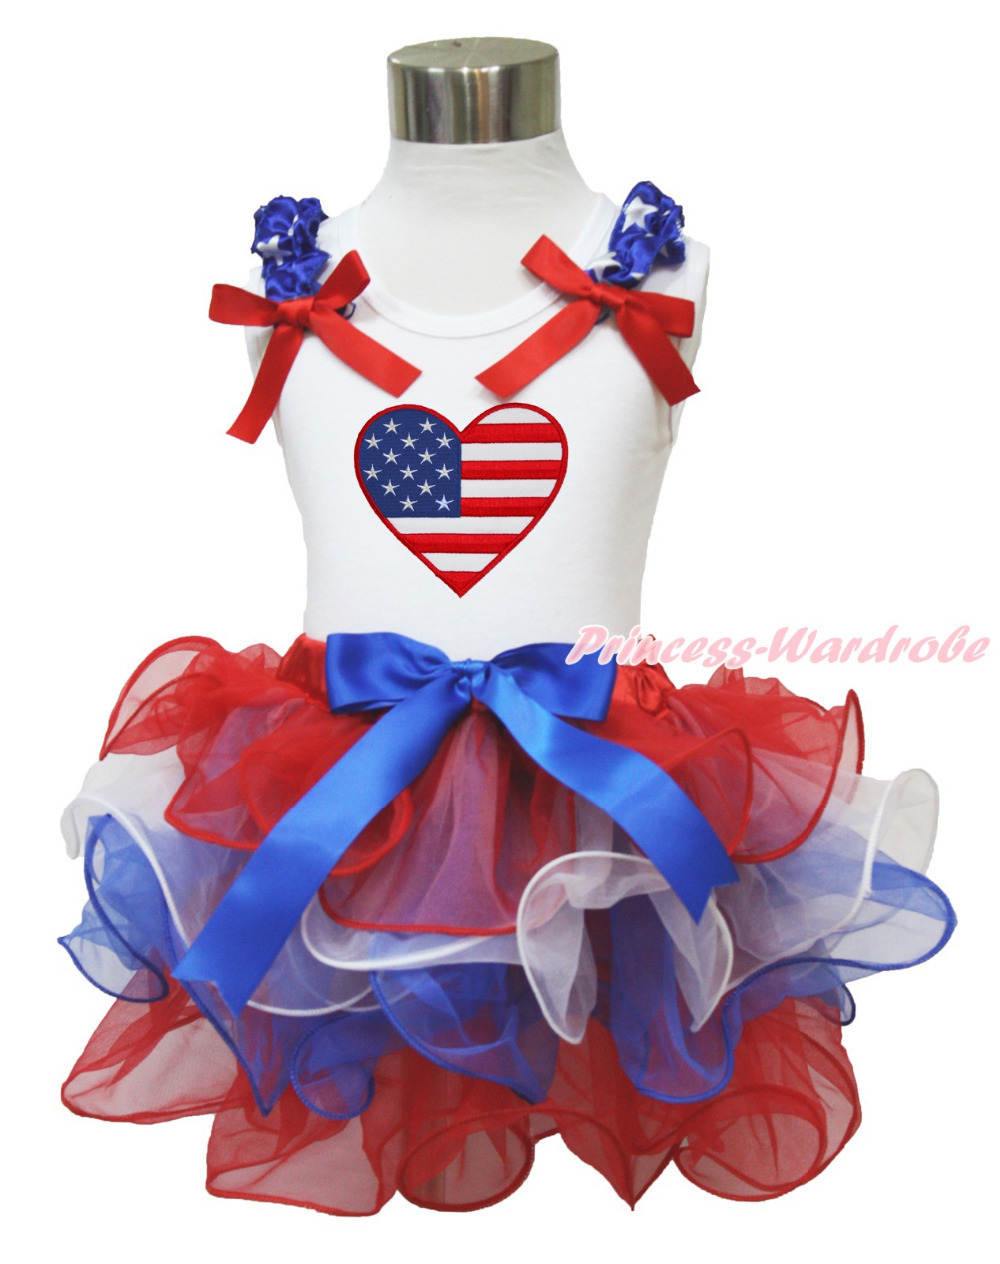 4th July USA Flag Heart White Long Sleeves Pettitop Red White Blue Petal Pettiskirt NB-8Y MAMH221 pumpkin print white pettitop coral petal skirt nb 8year baby girl mamh241